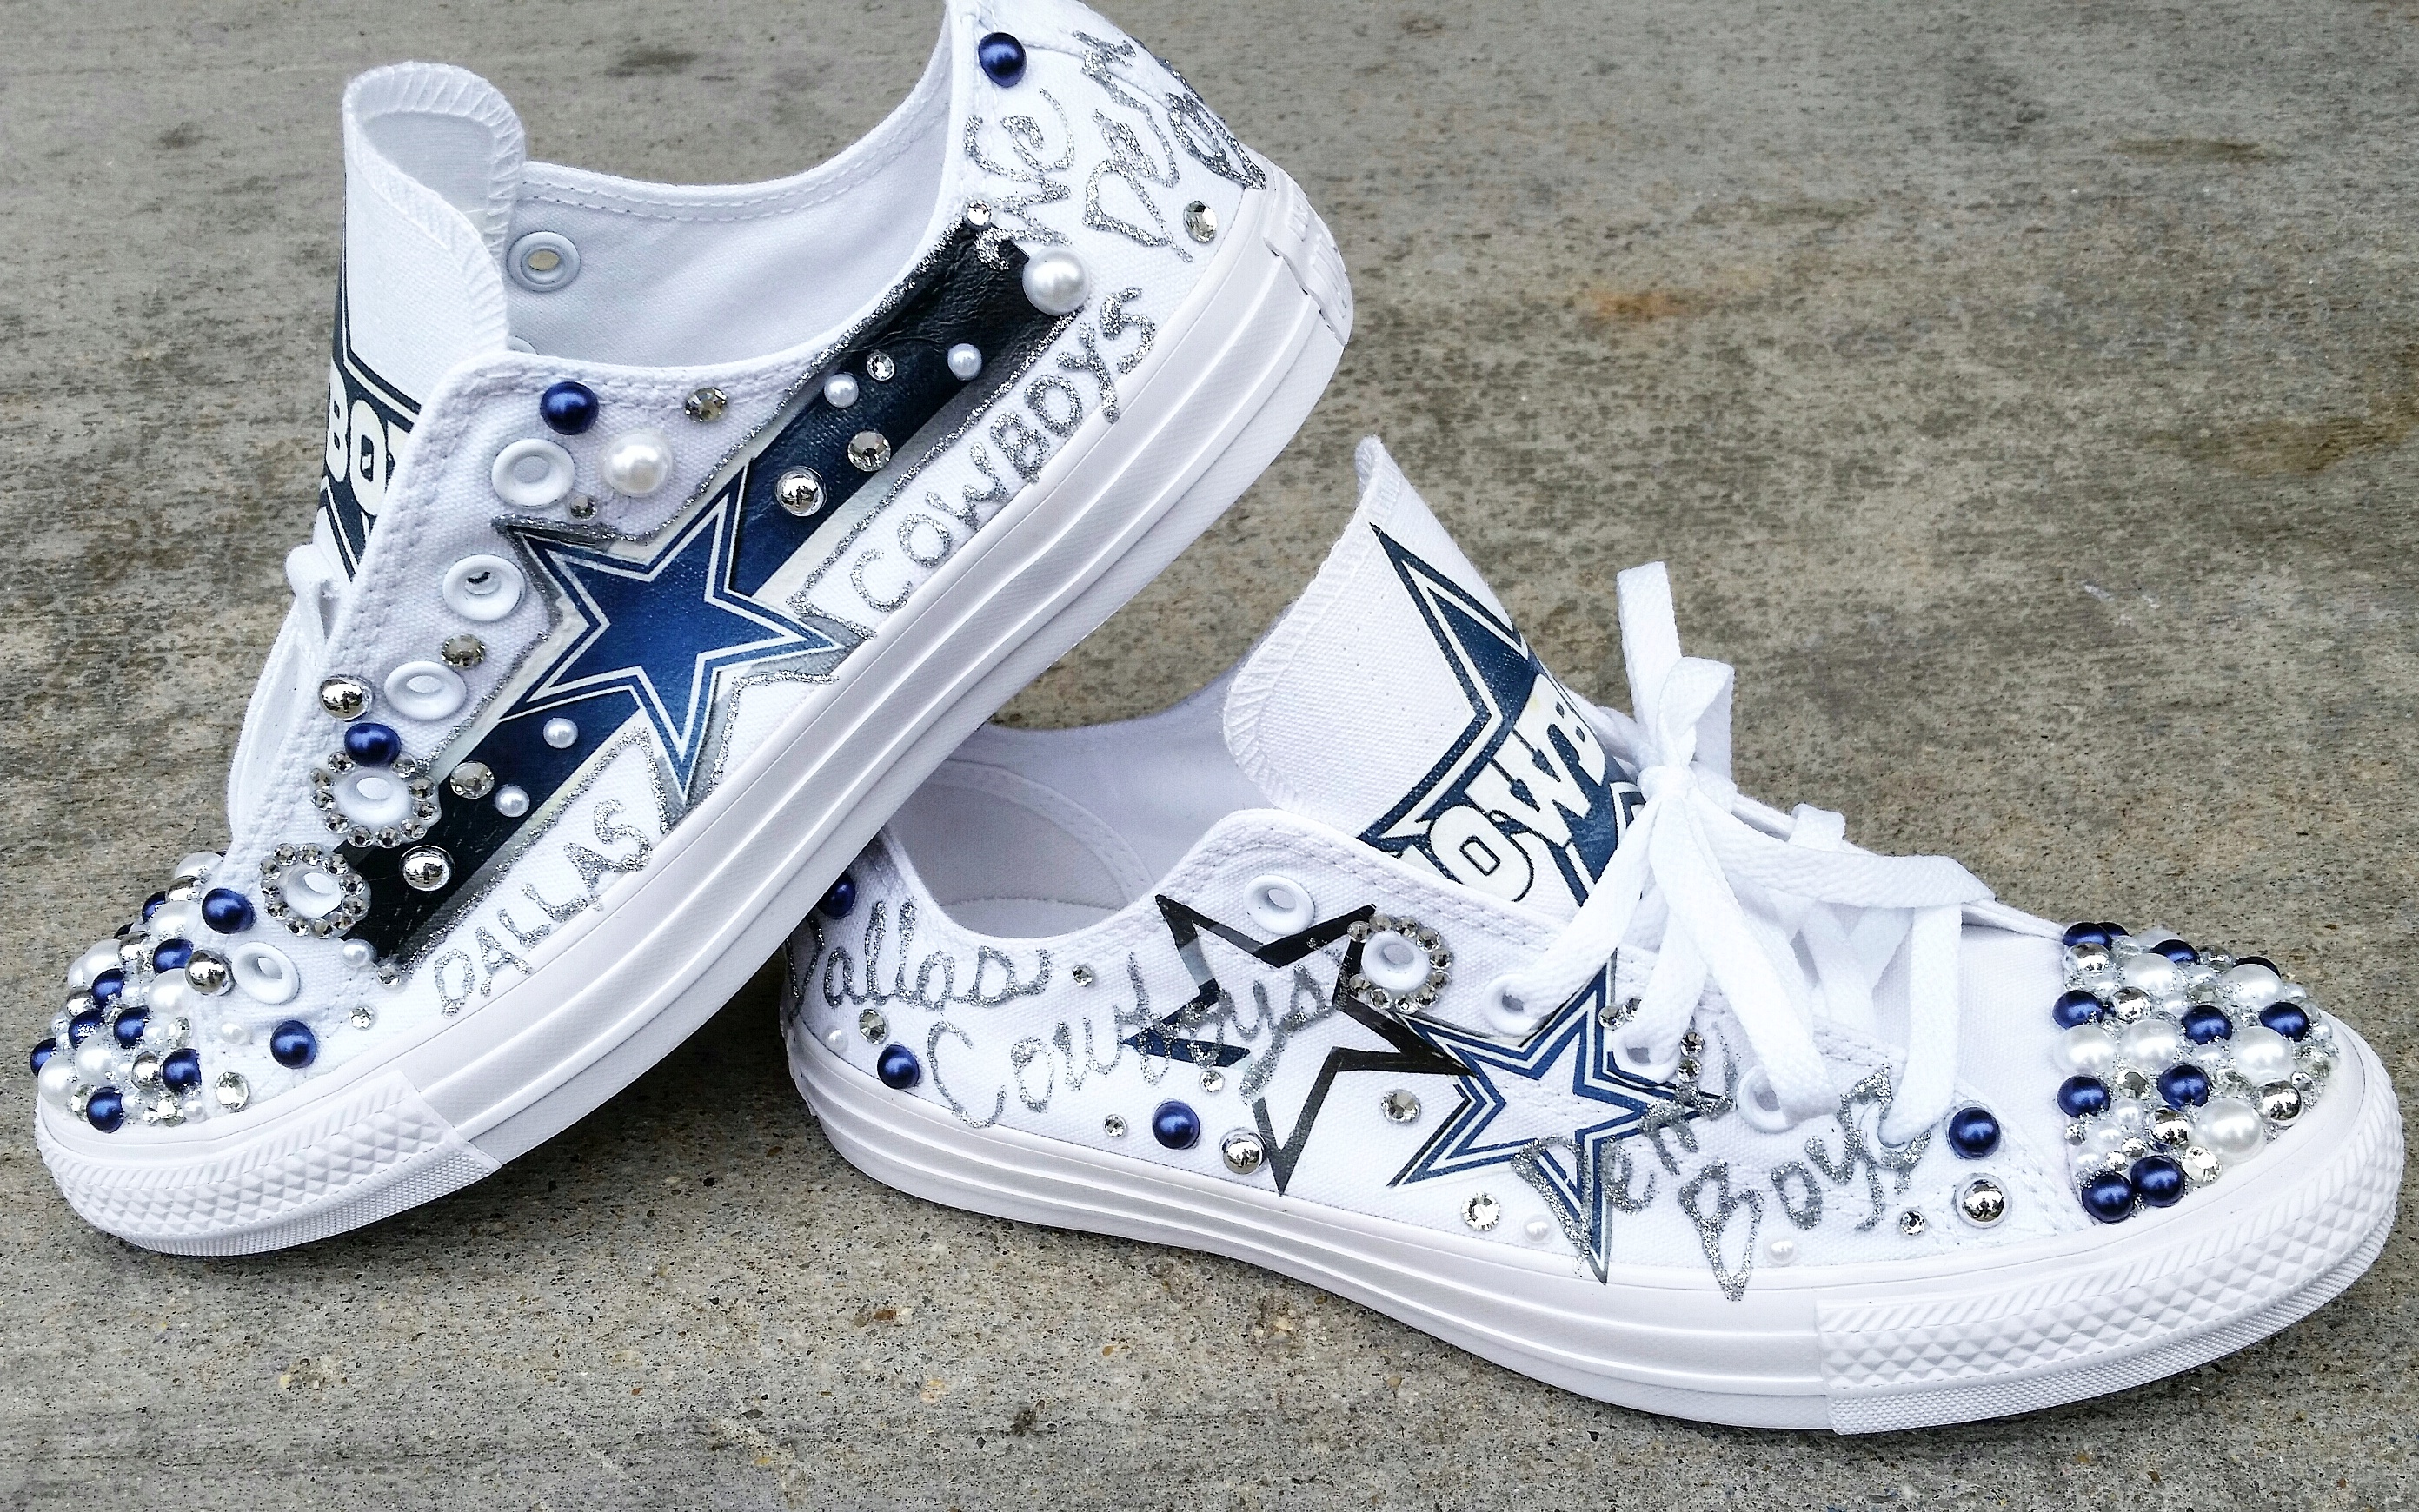 Custom Low Top Dallas Cowboys Converse on Storenvy 91eefe04c904